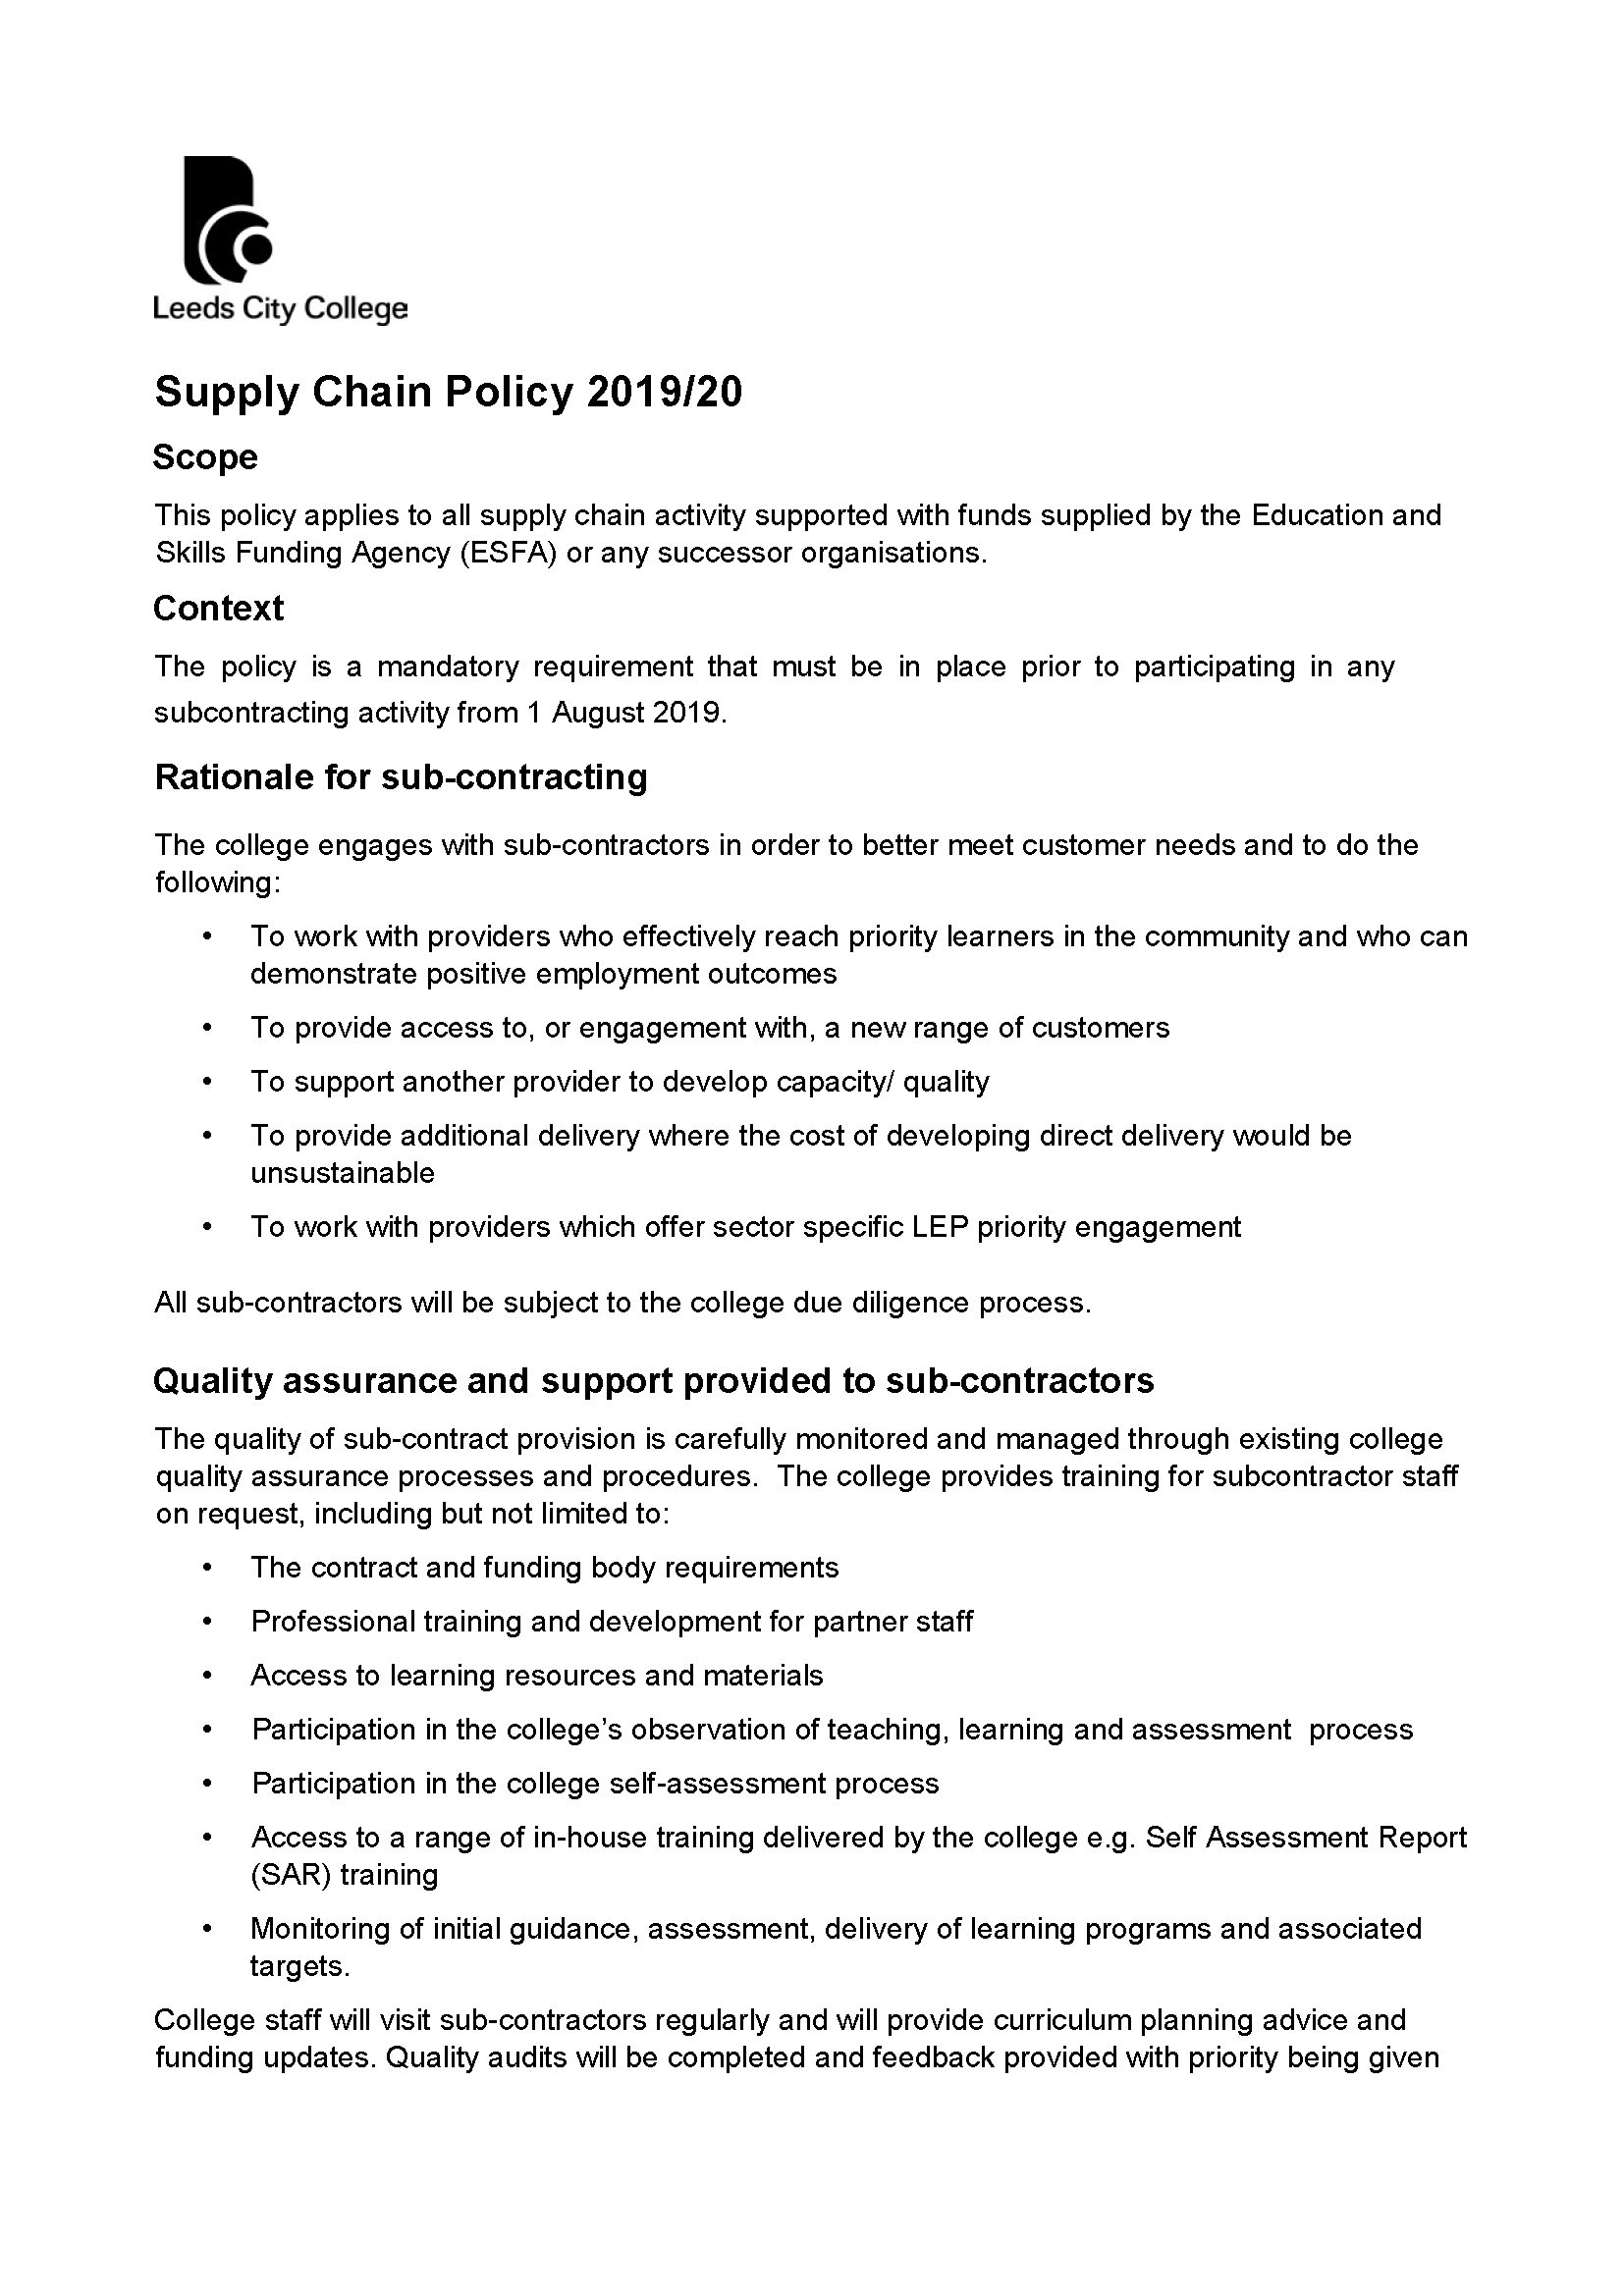 Supply Chain Policy 2019/20 cover